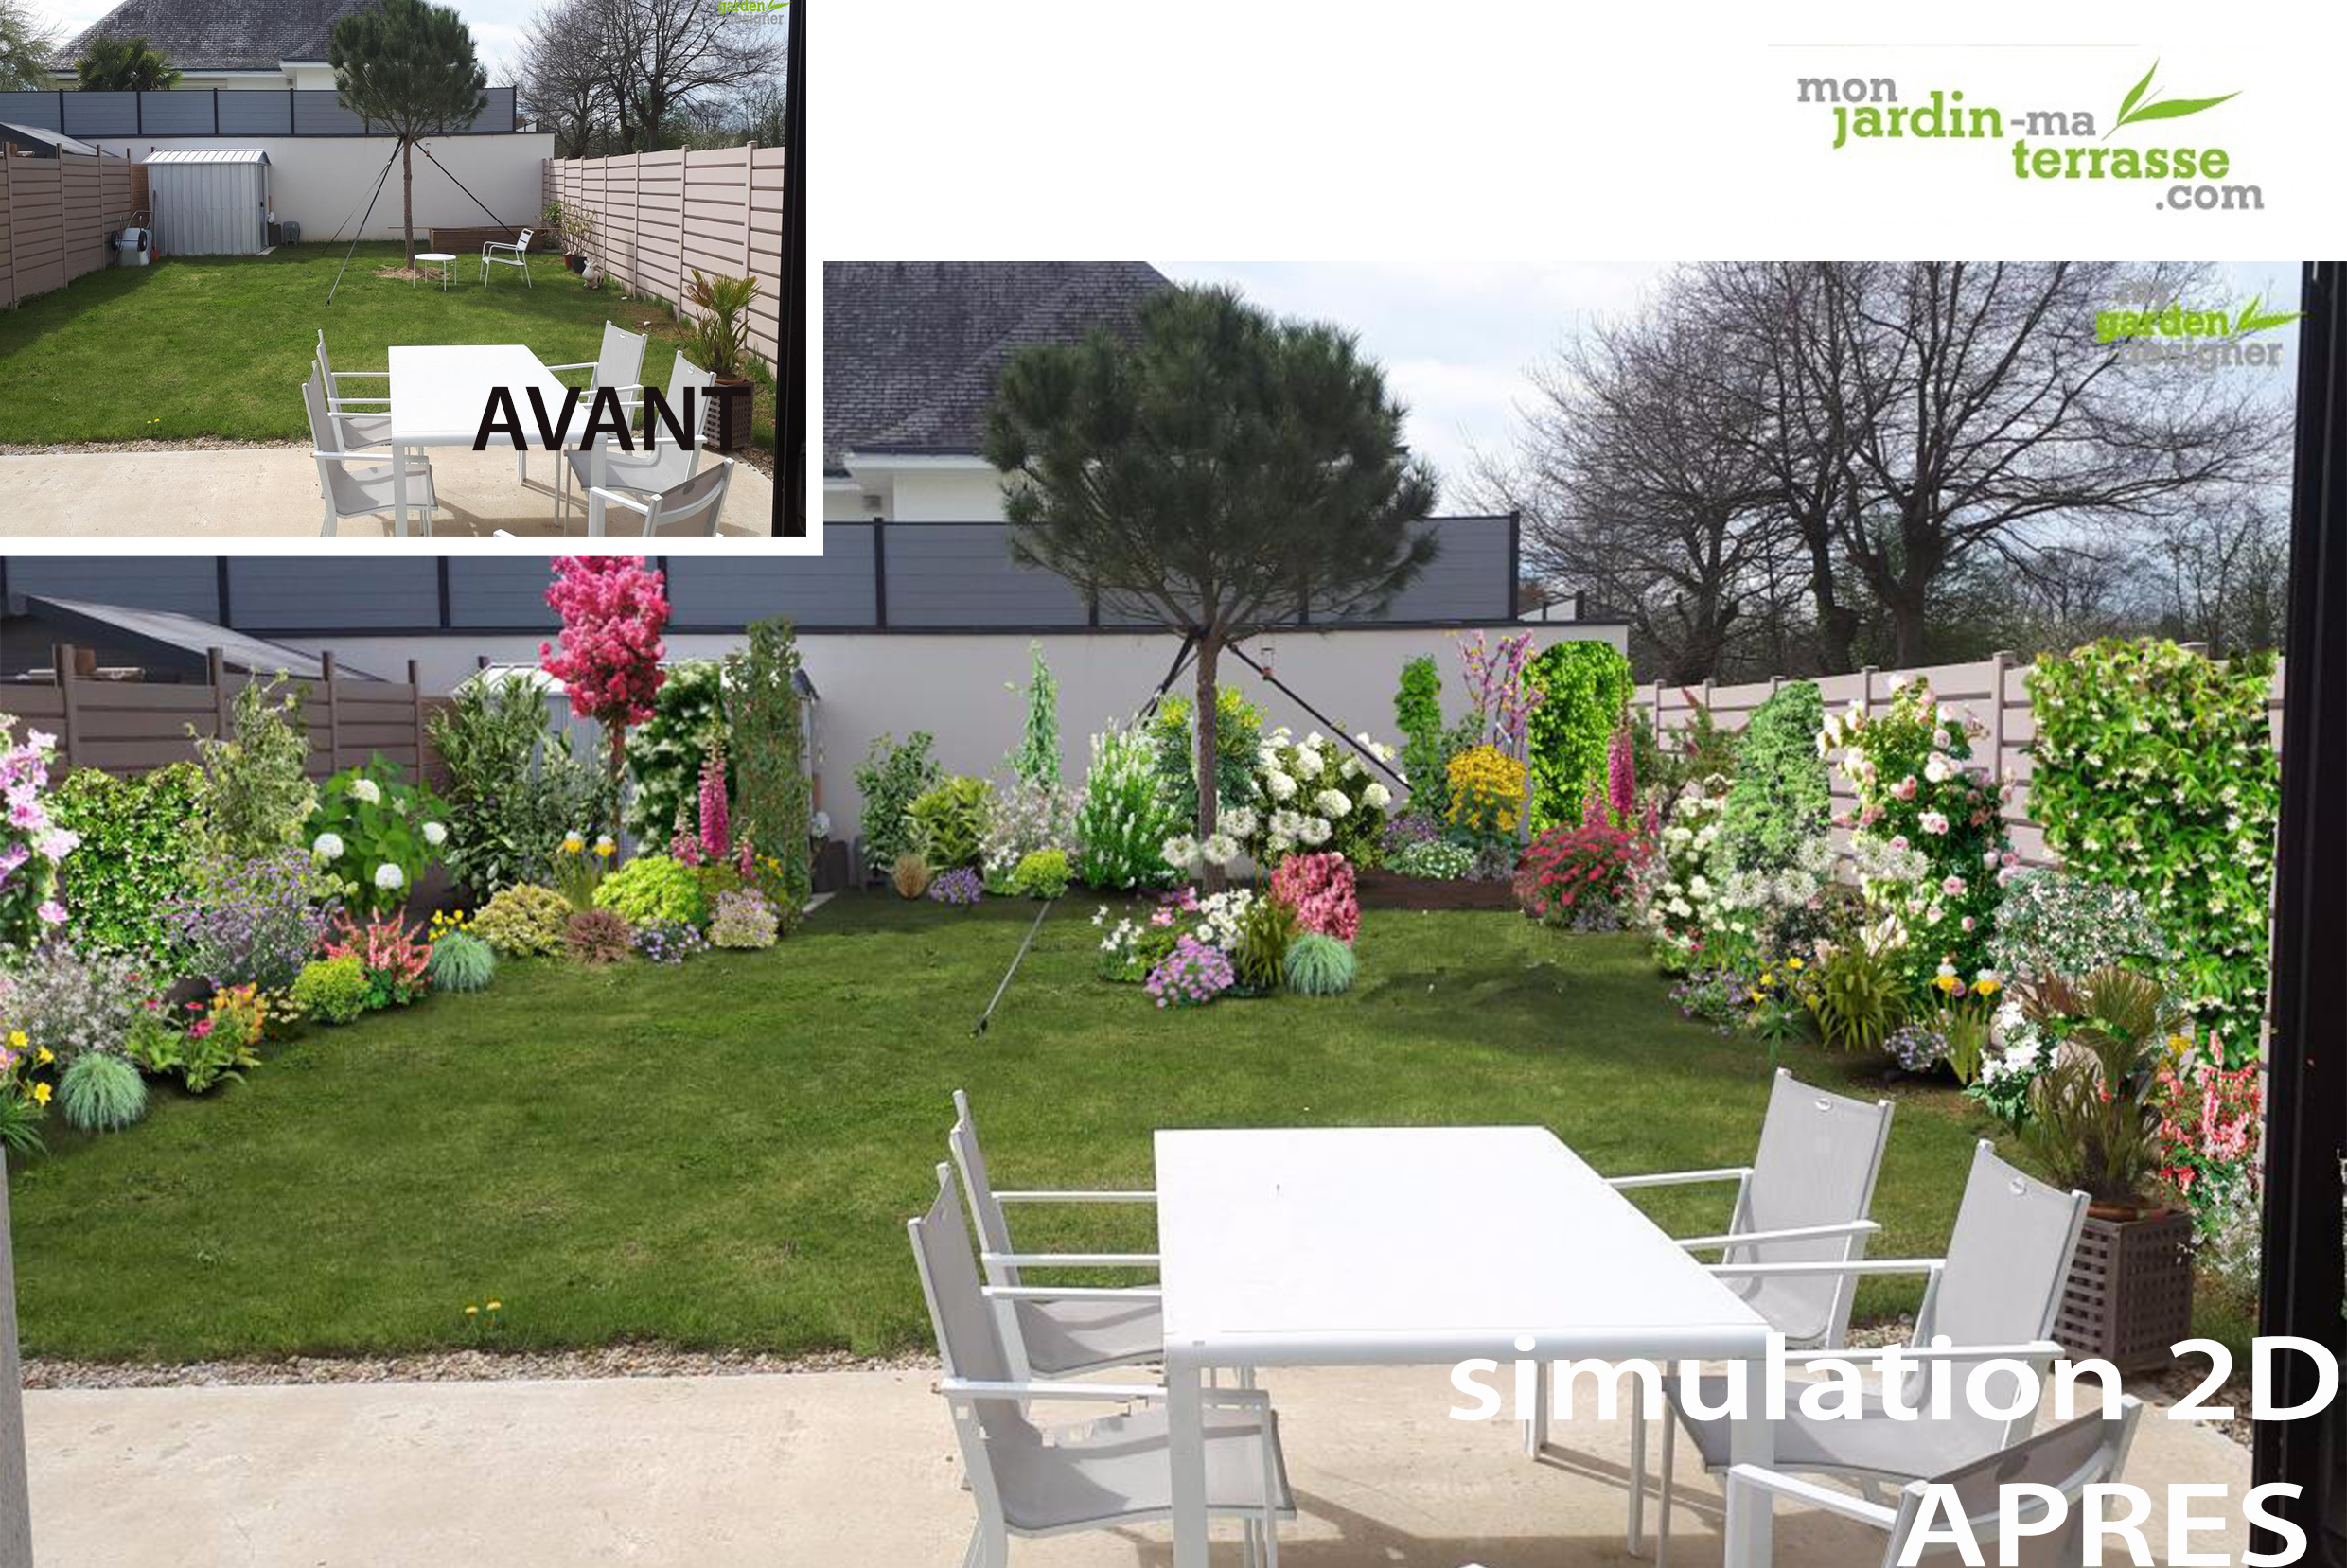 Comment am nager un petit jardin rectangulaire monjardin for Amenagement jardin anglais